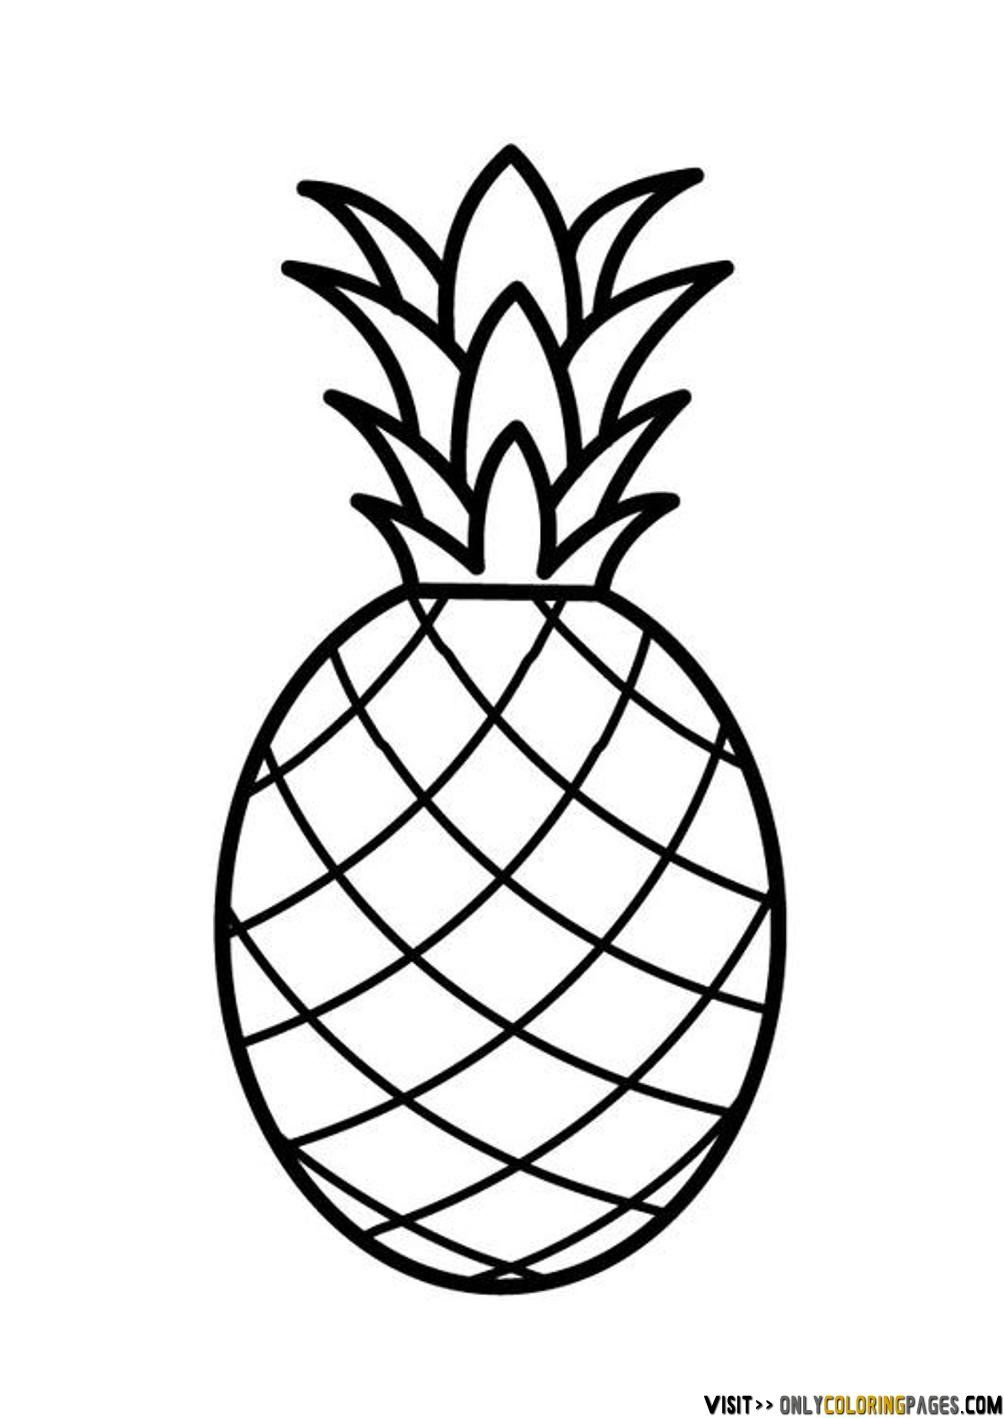 Pineapple Coloring Page Fruit Coloring Pages Pineapple Drawing